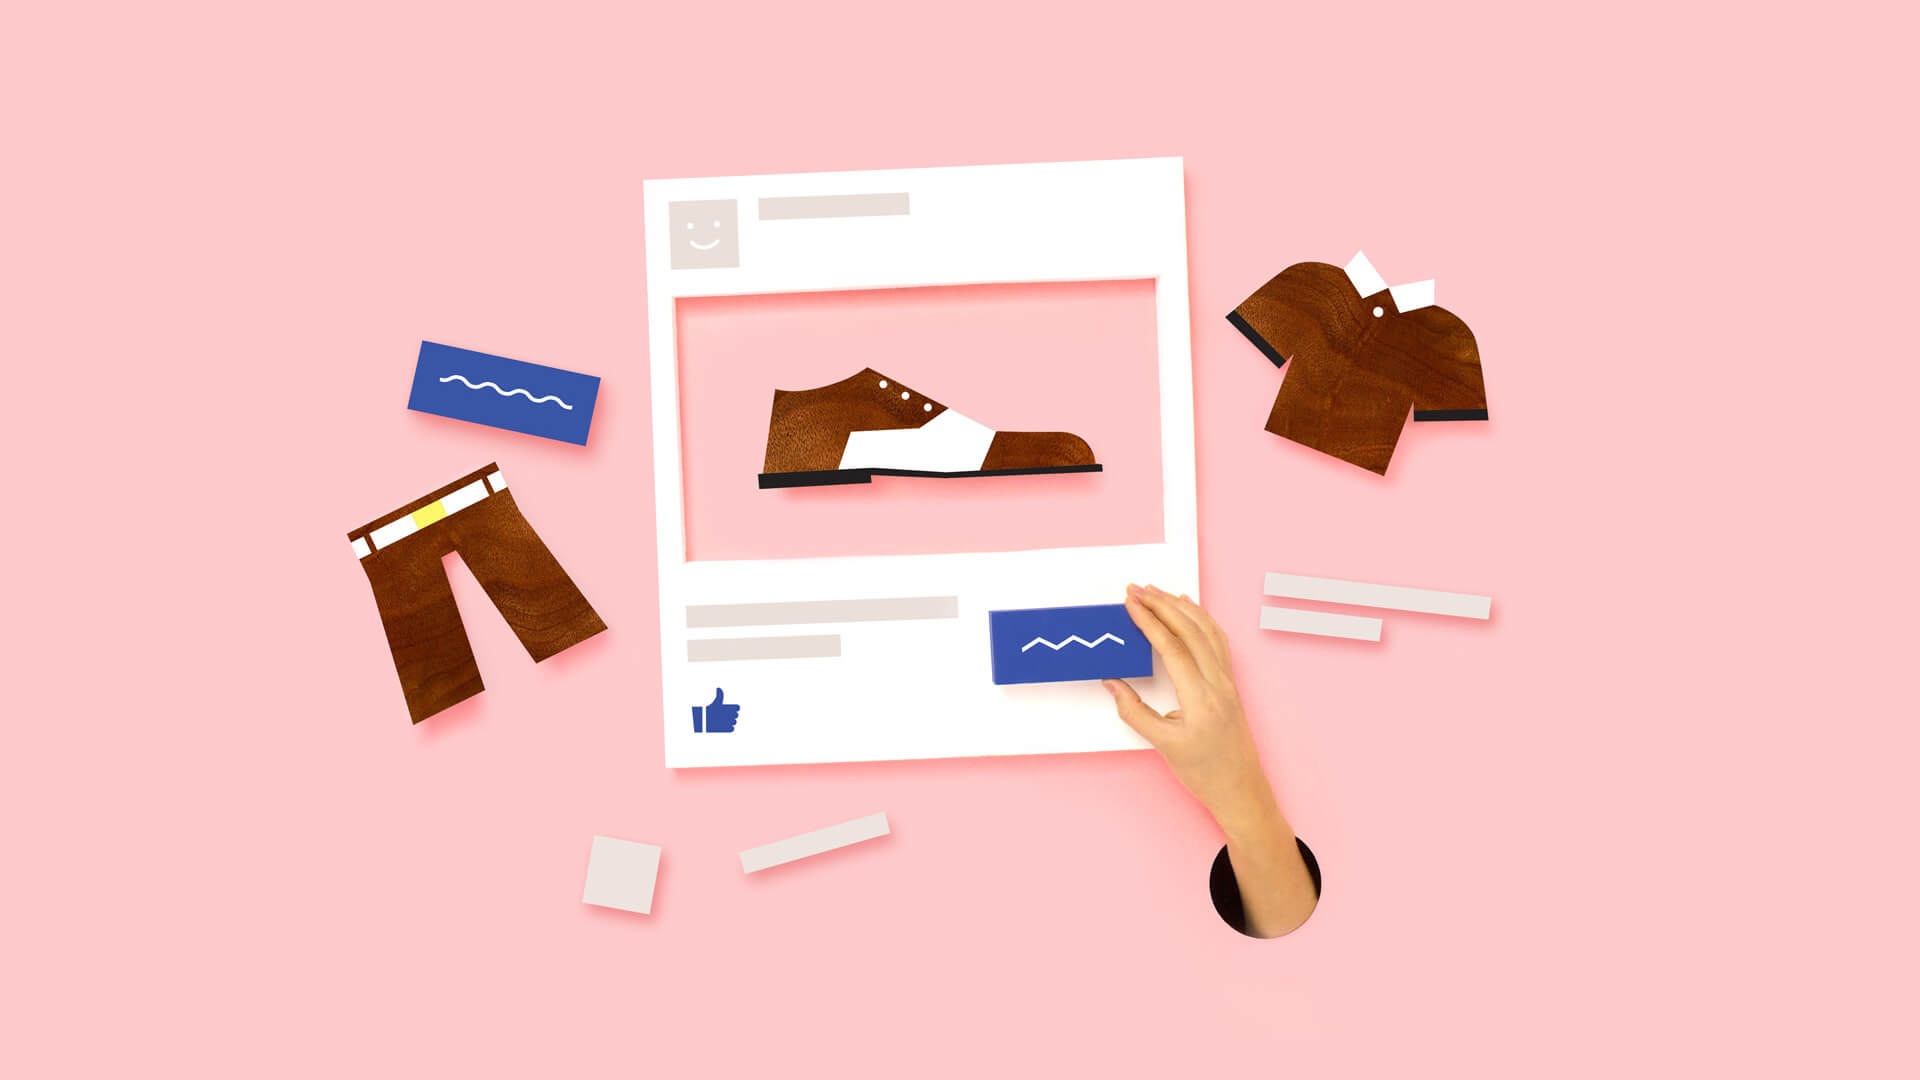 MailChimp graphic, depicting creation of a Facebook ad.